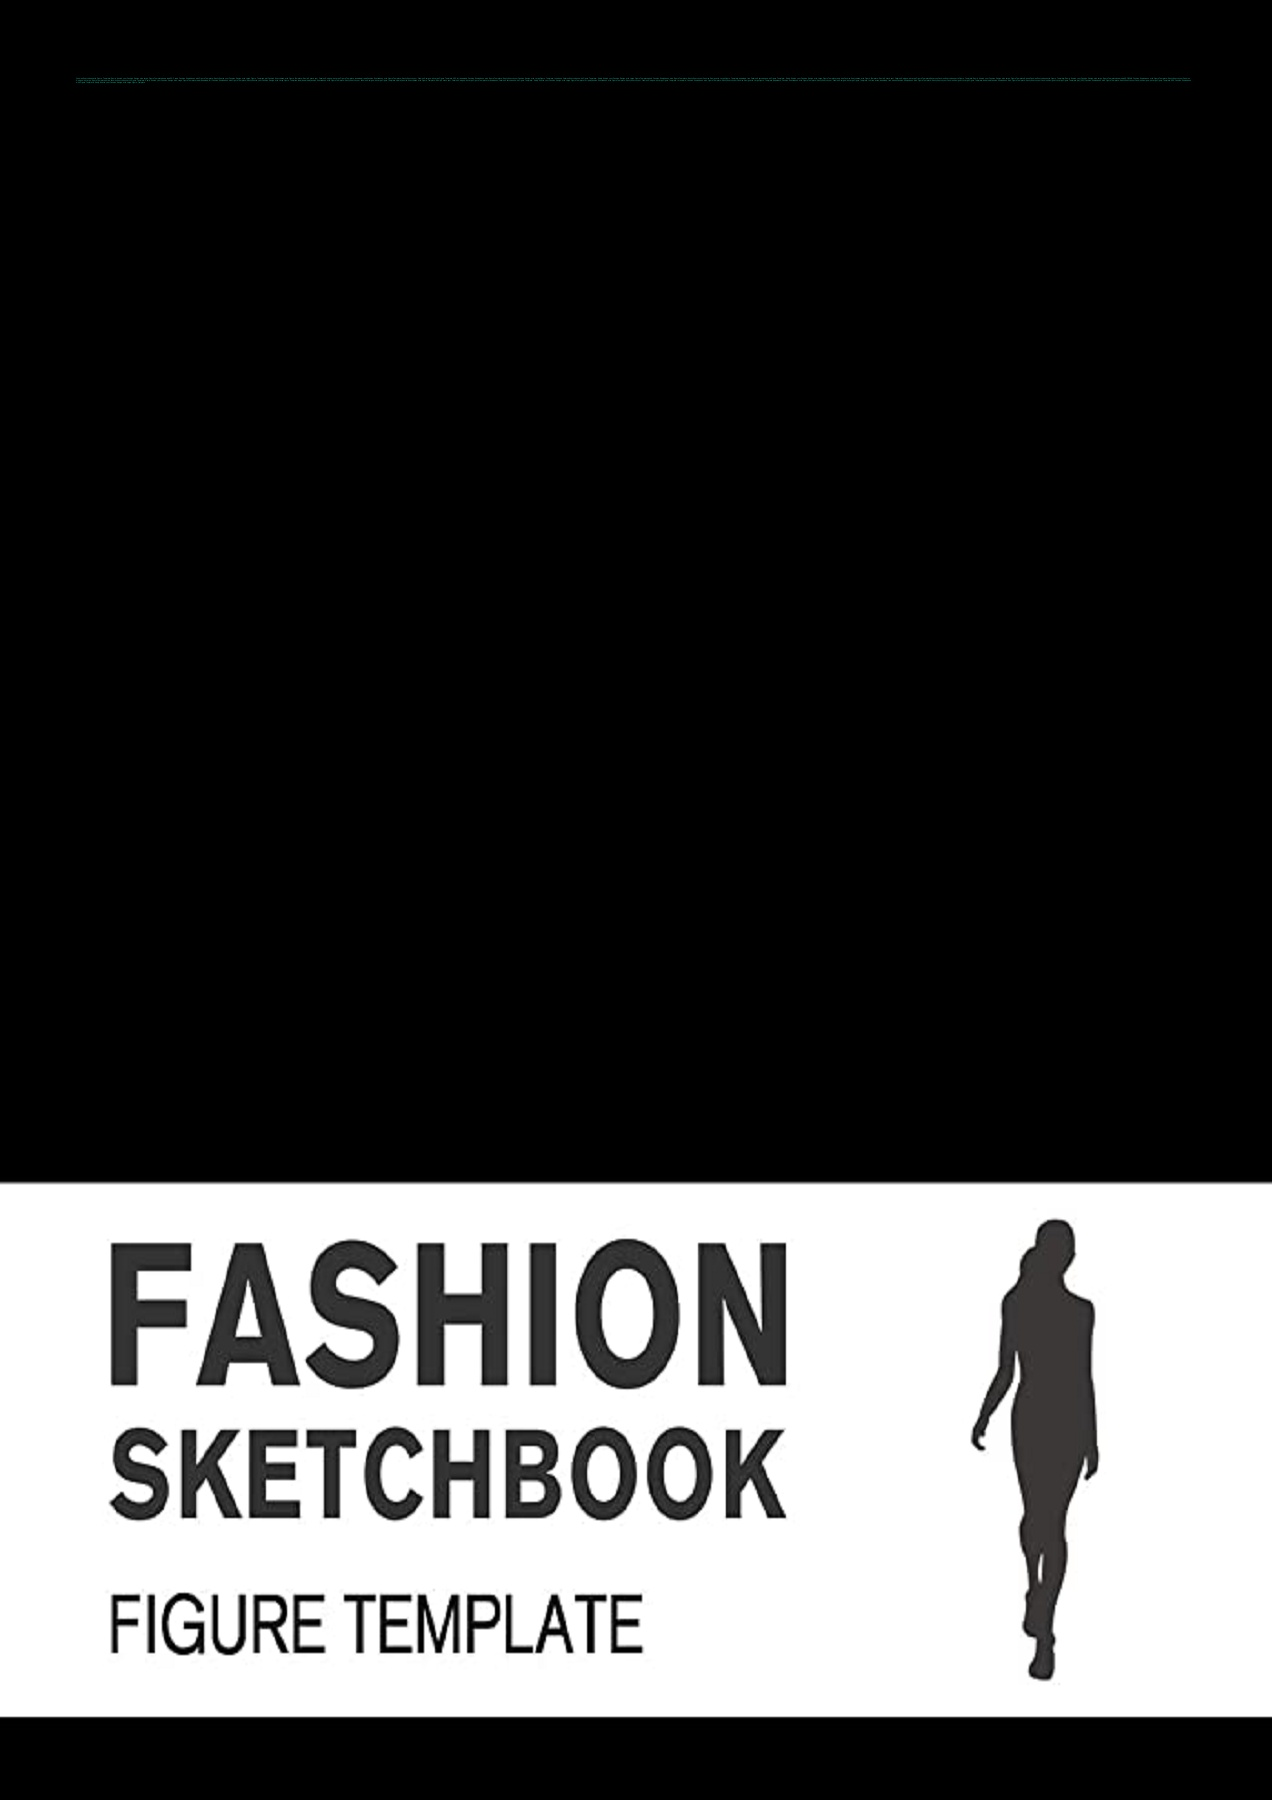 E Book Pdf Fashion Sketchbook With Figure Template Easily Sketch Your Fashion Design With Large Figure Template For Ipad Pages 1 3 Text Version Anyflip